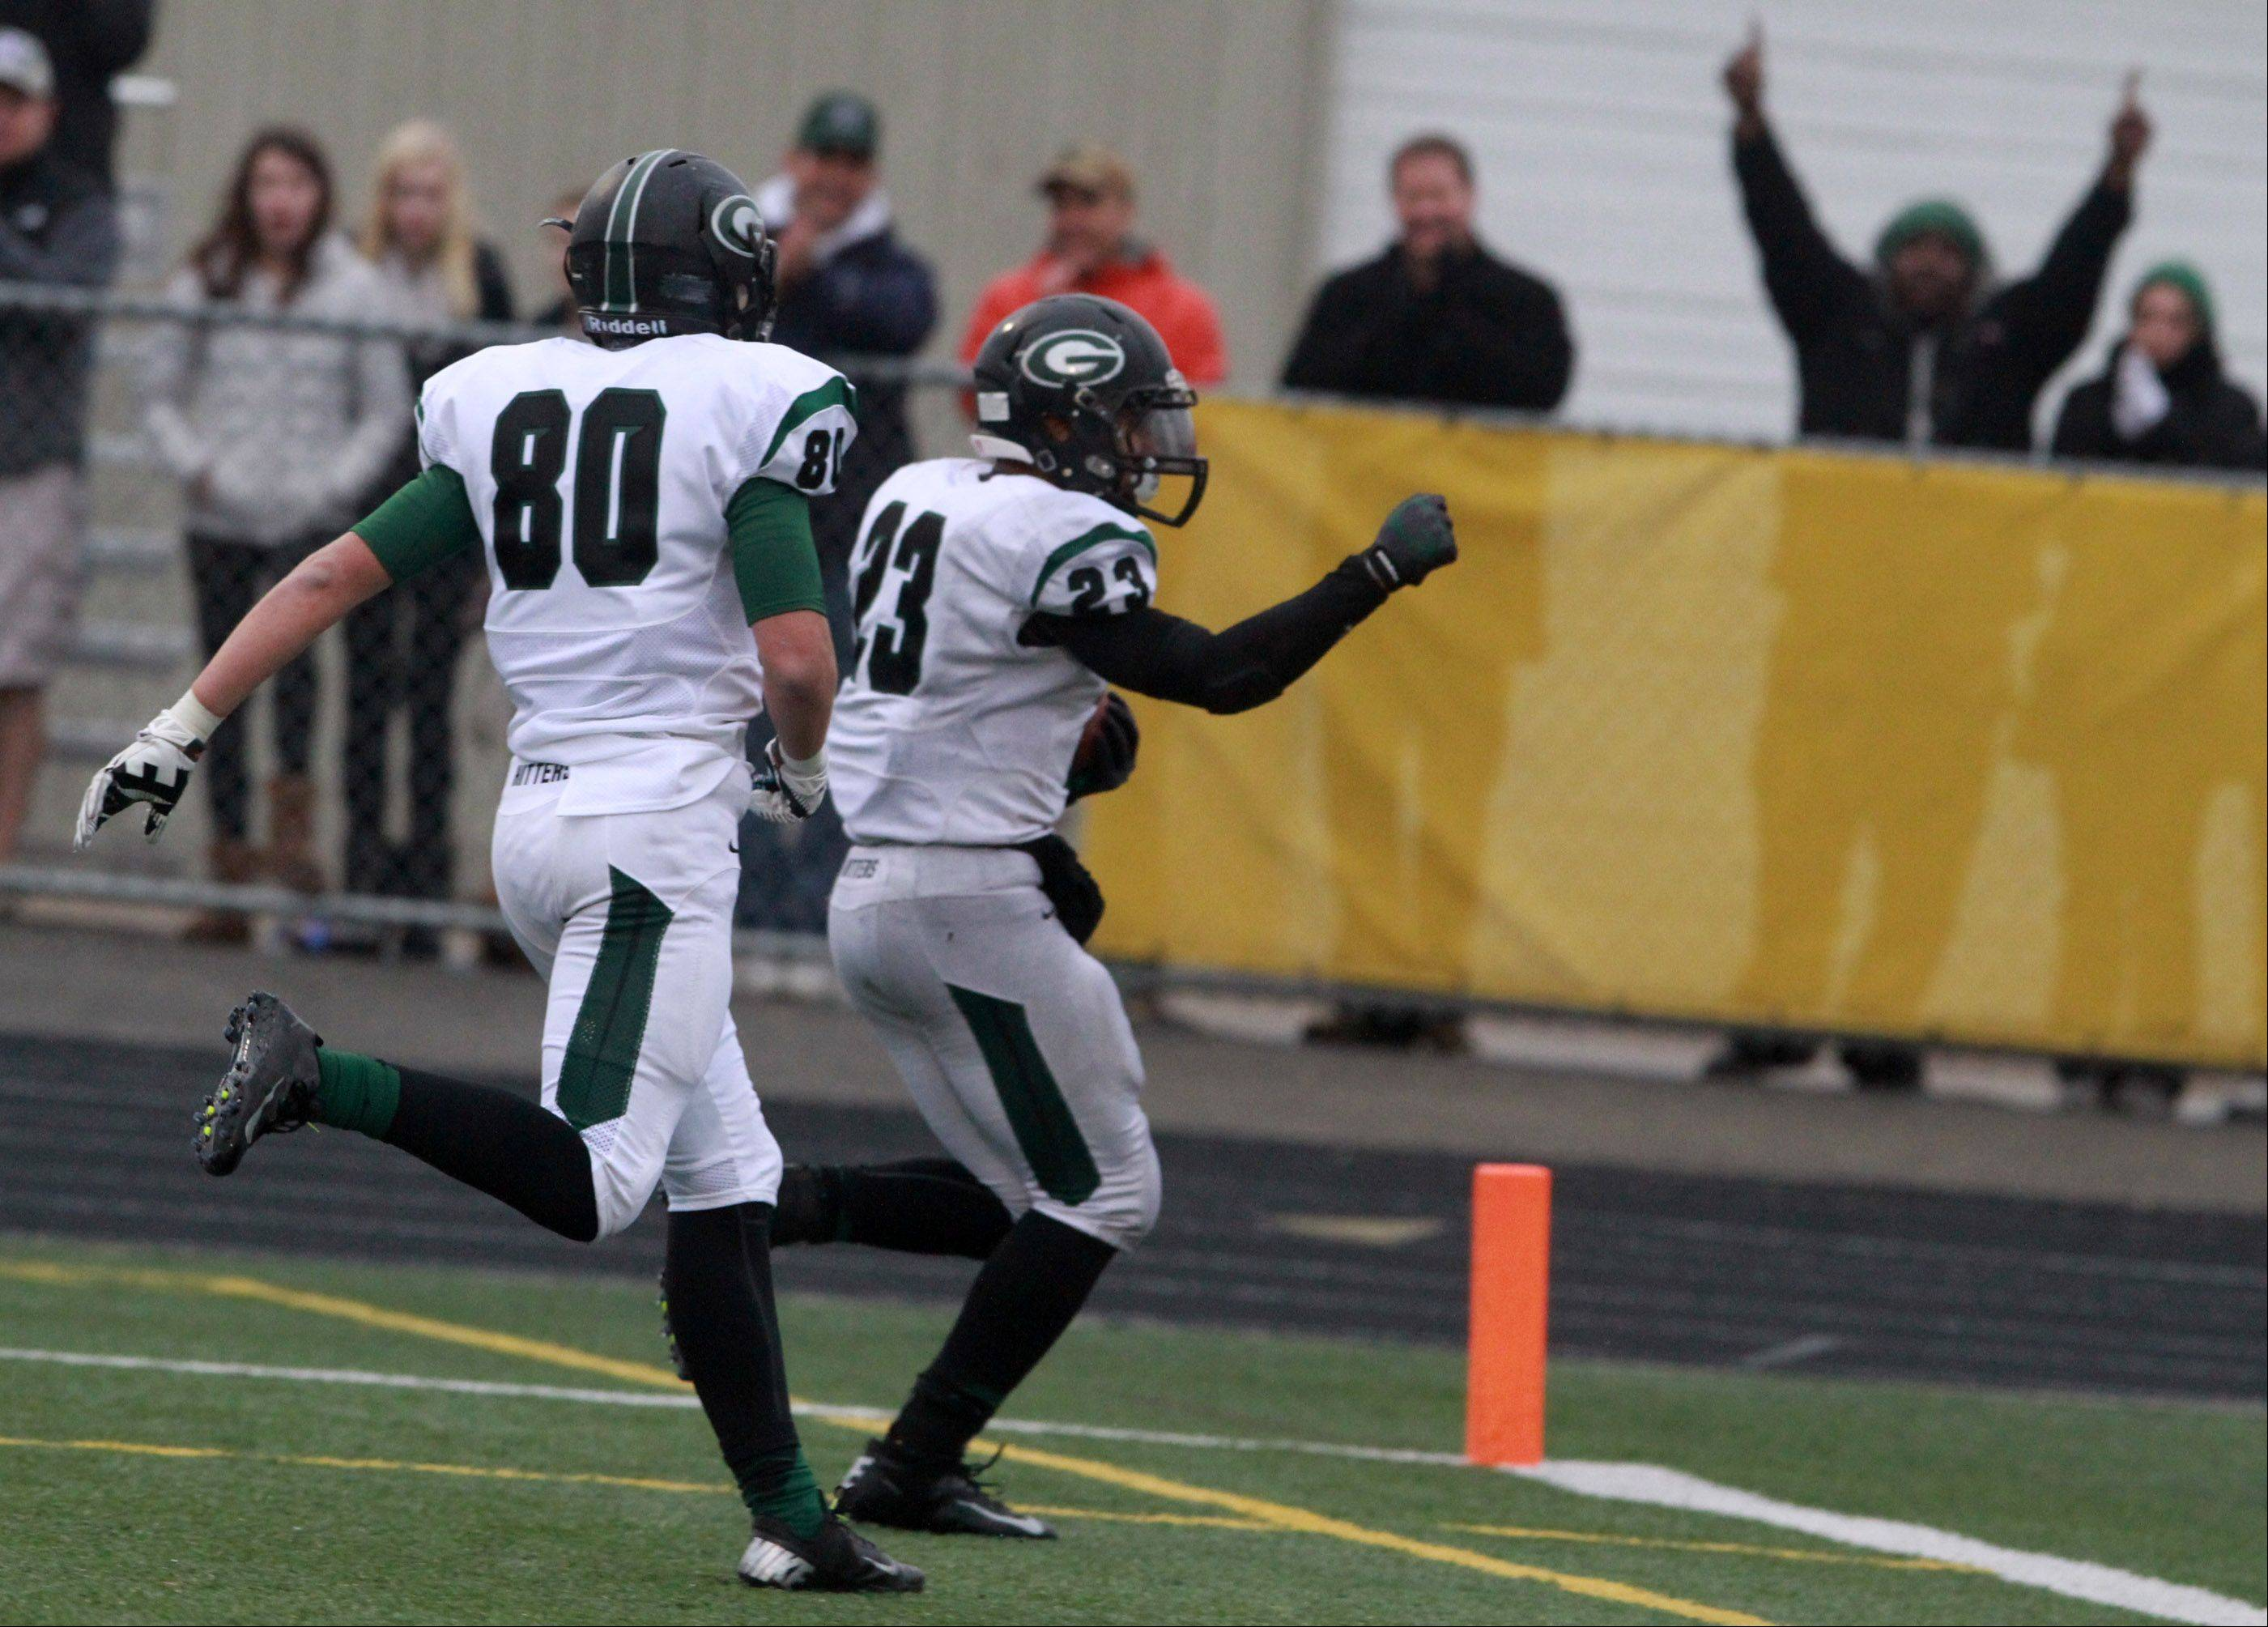 Glenbard West running back Scott Andrews celebrates running for a touchdown against Schaumburg.